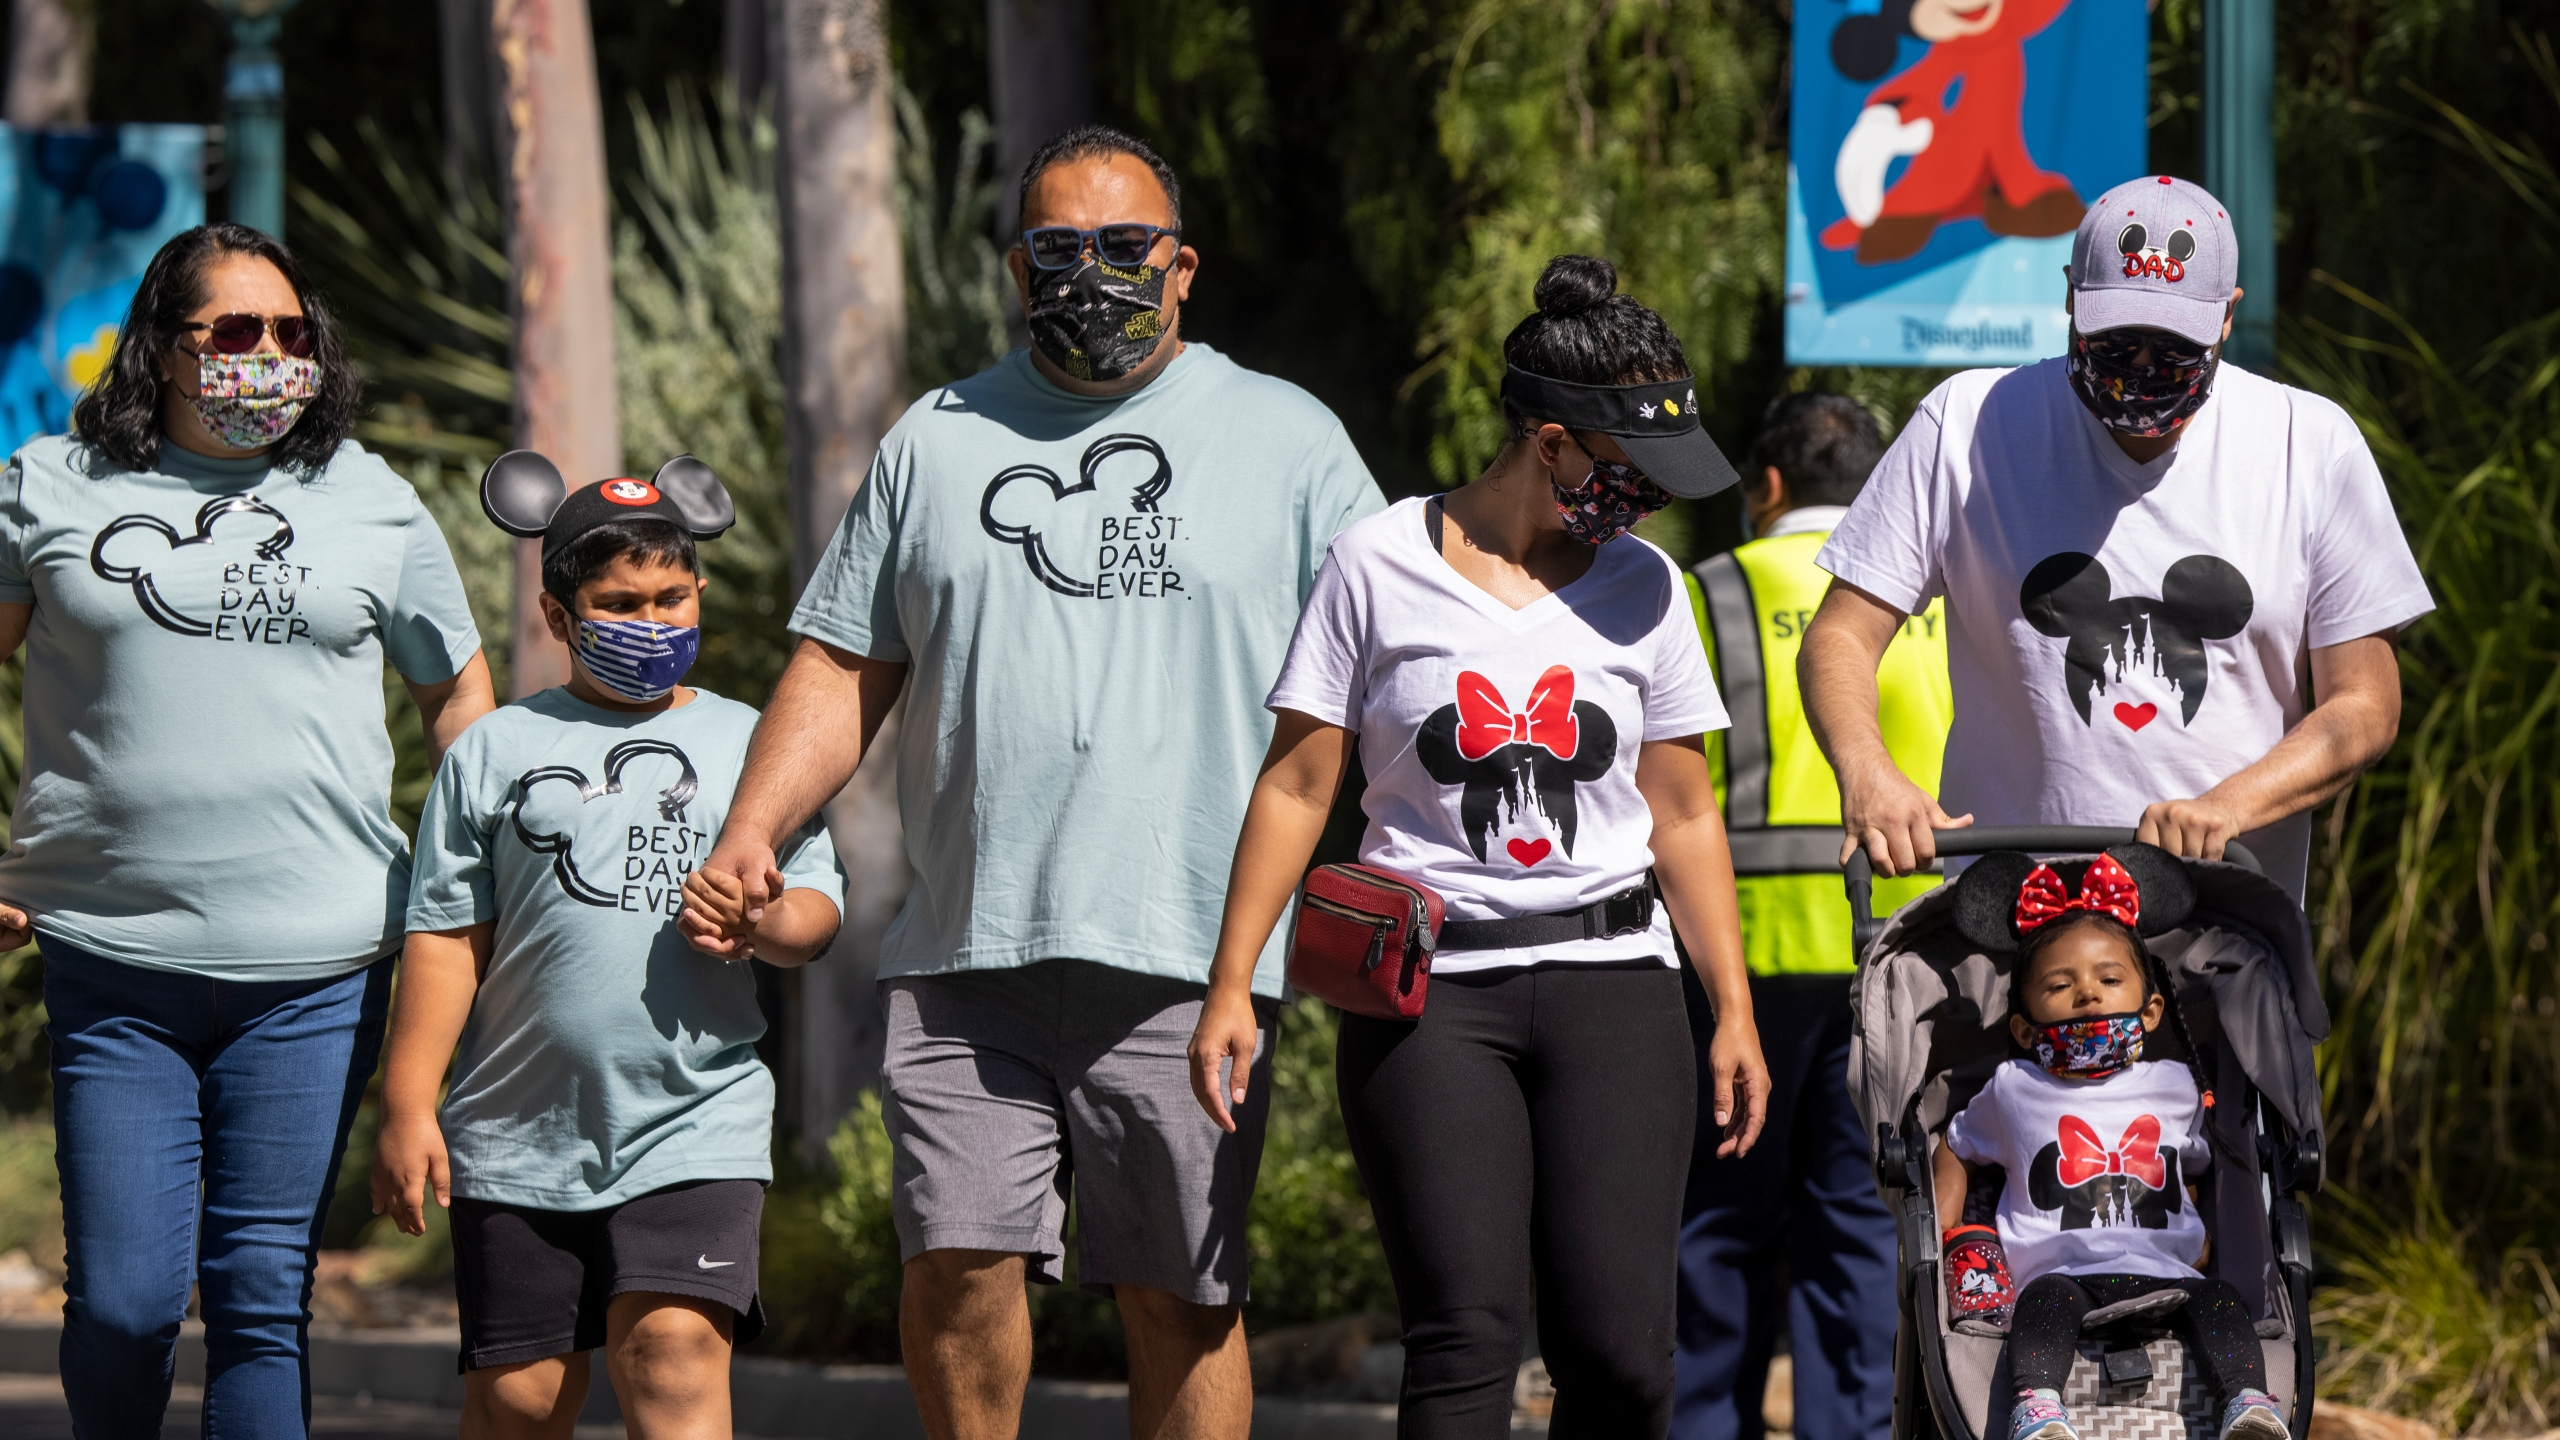 People enter Disneyland Park as it reopens on April 30, 2021, for the first time since the COVID-19 pandemic forced the park to shut down. (David McNew / Getty Images)